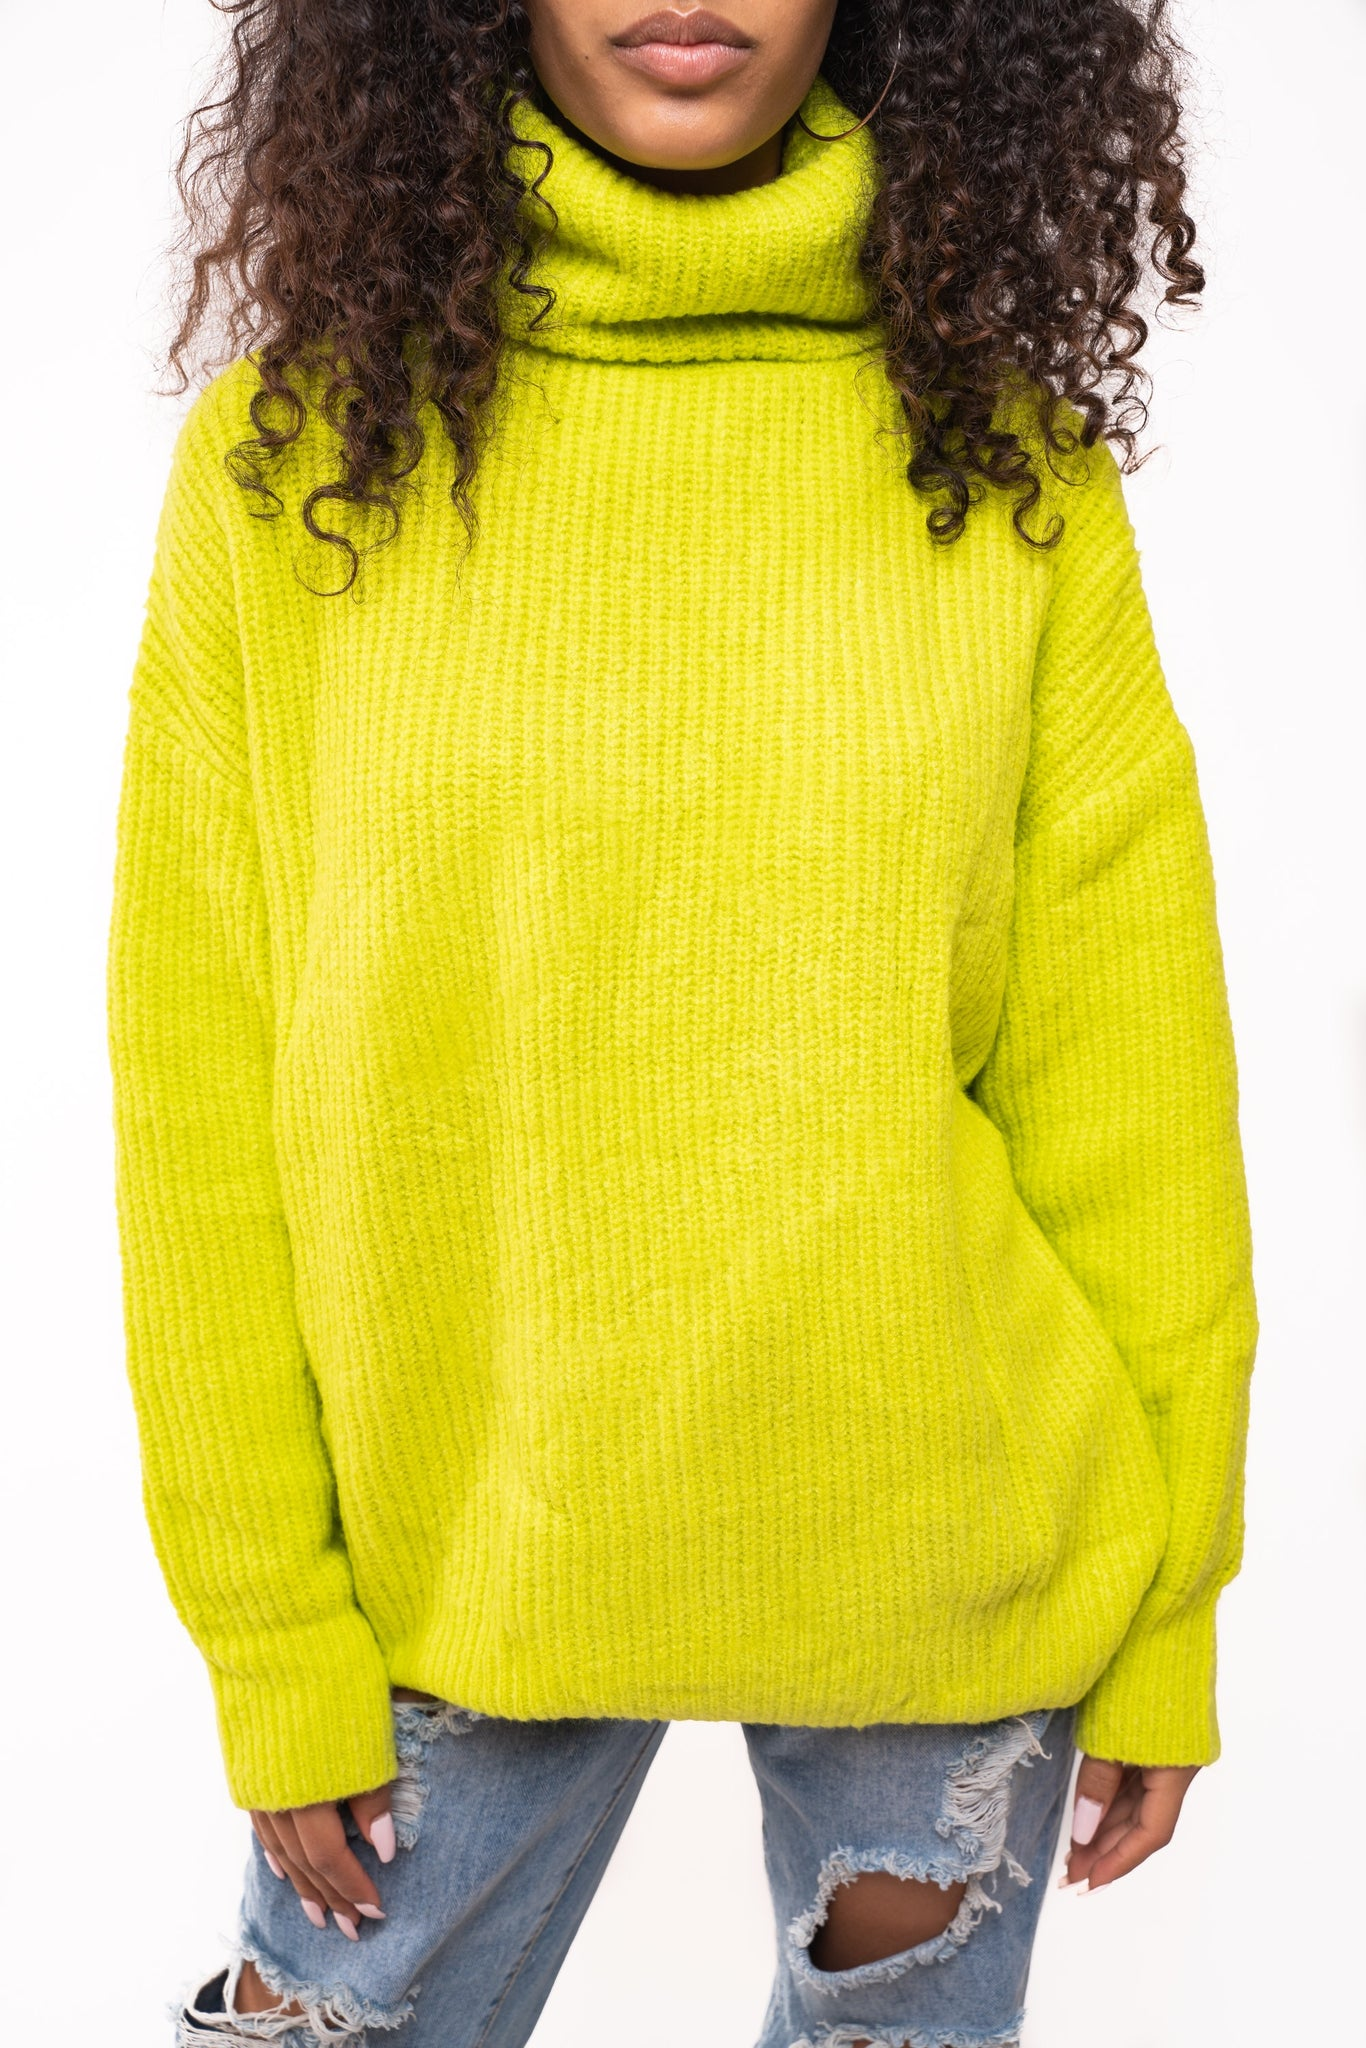 The Highlighter Knit